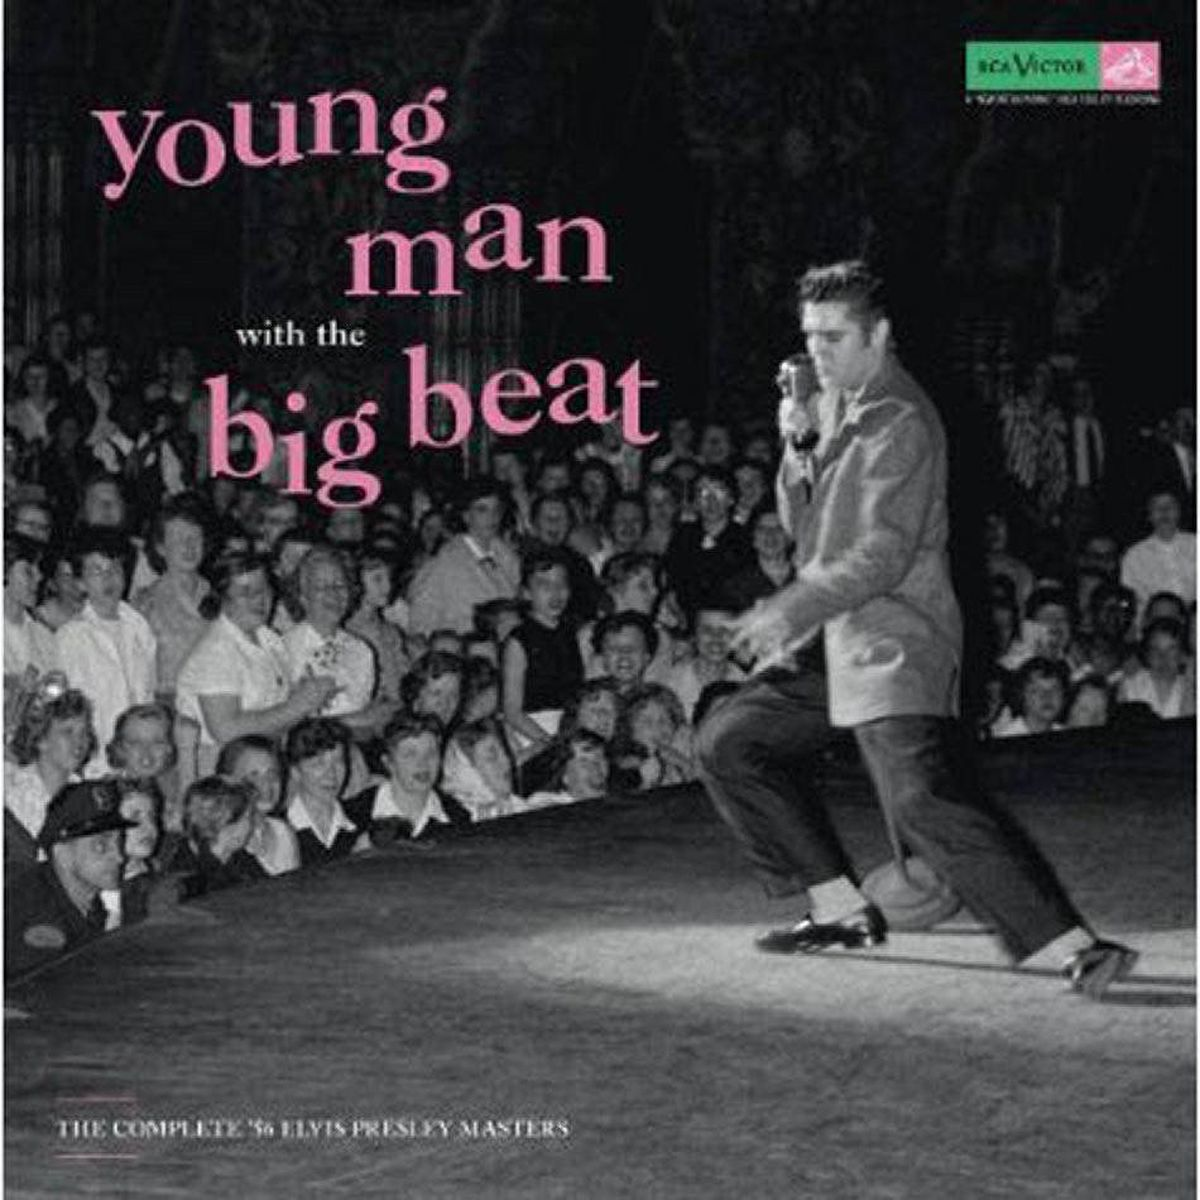 Young Man With the Big Beat This is the way Elvis Presley shook, rattled and rolled in 1956. All from 55 years ago, the studio tracks, live recordings (audio isn't great), interviews and a hardbound book celebrate a blue-suede anniversary. We might also suggest: The four-CD Howlin' Wolf: Smokestack Lightening – The Complete Chess Masters, a nice look at Sam Phillips' favourite recording artist.